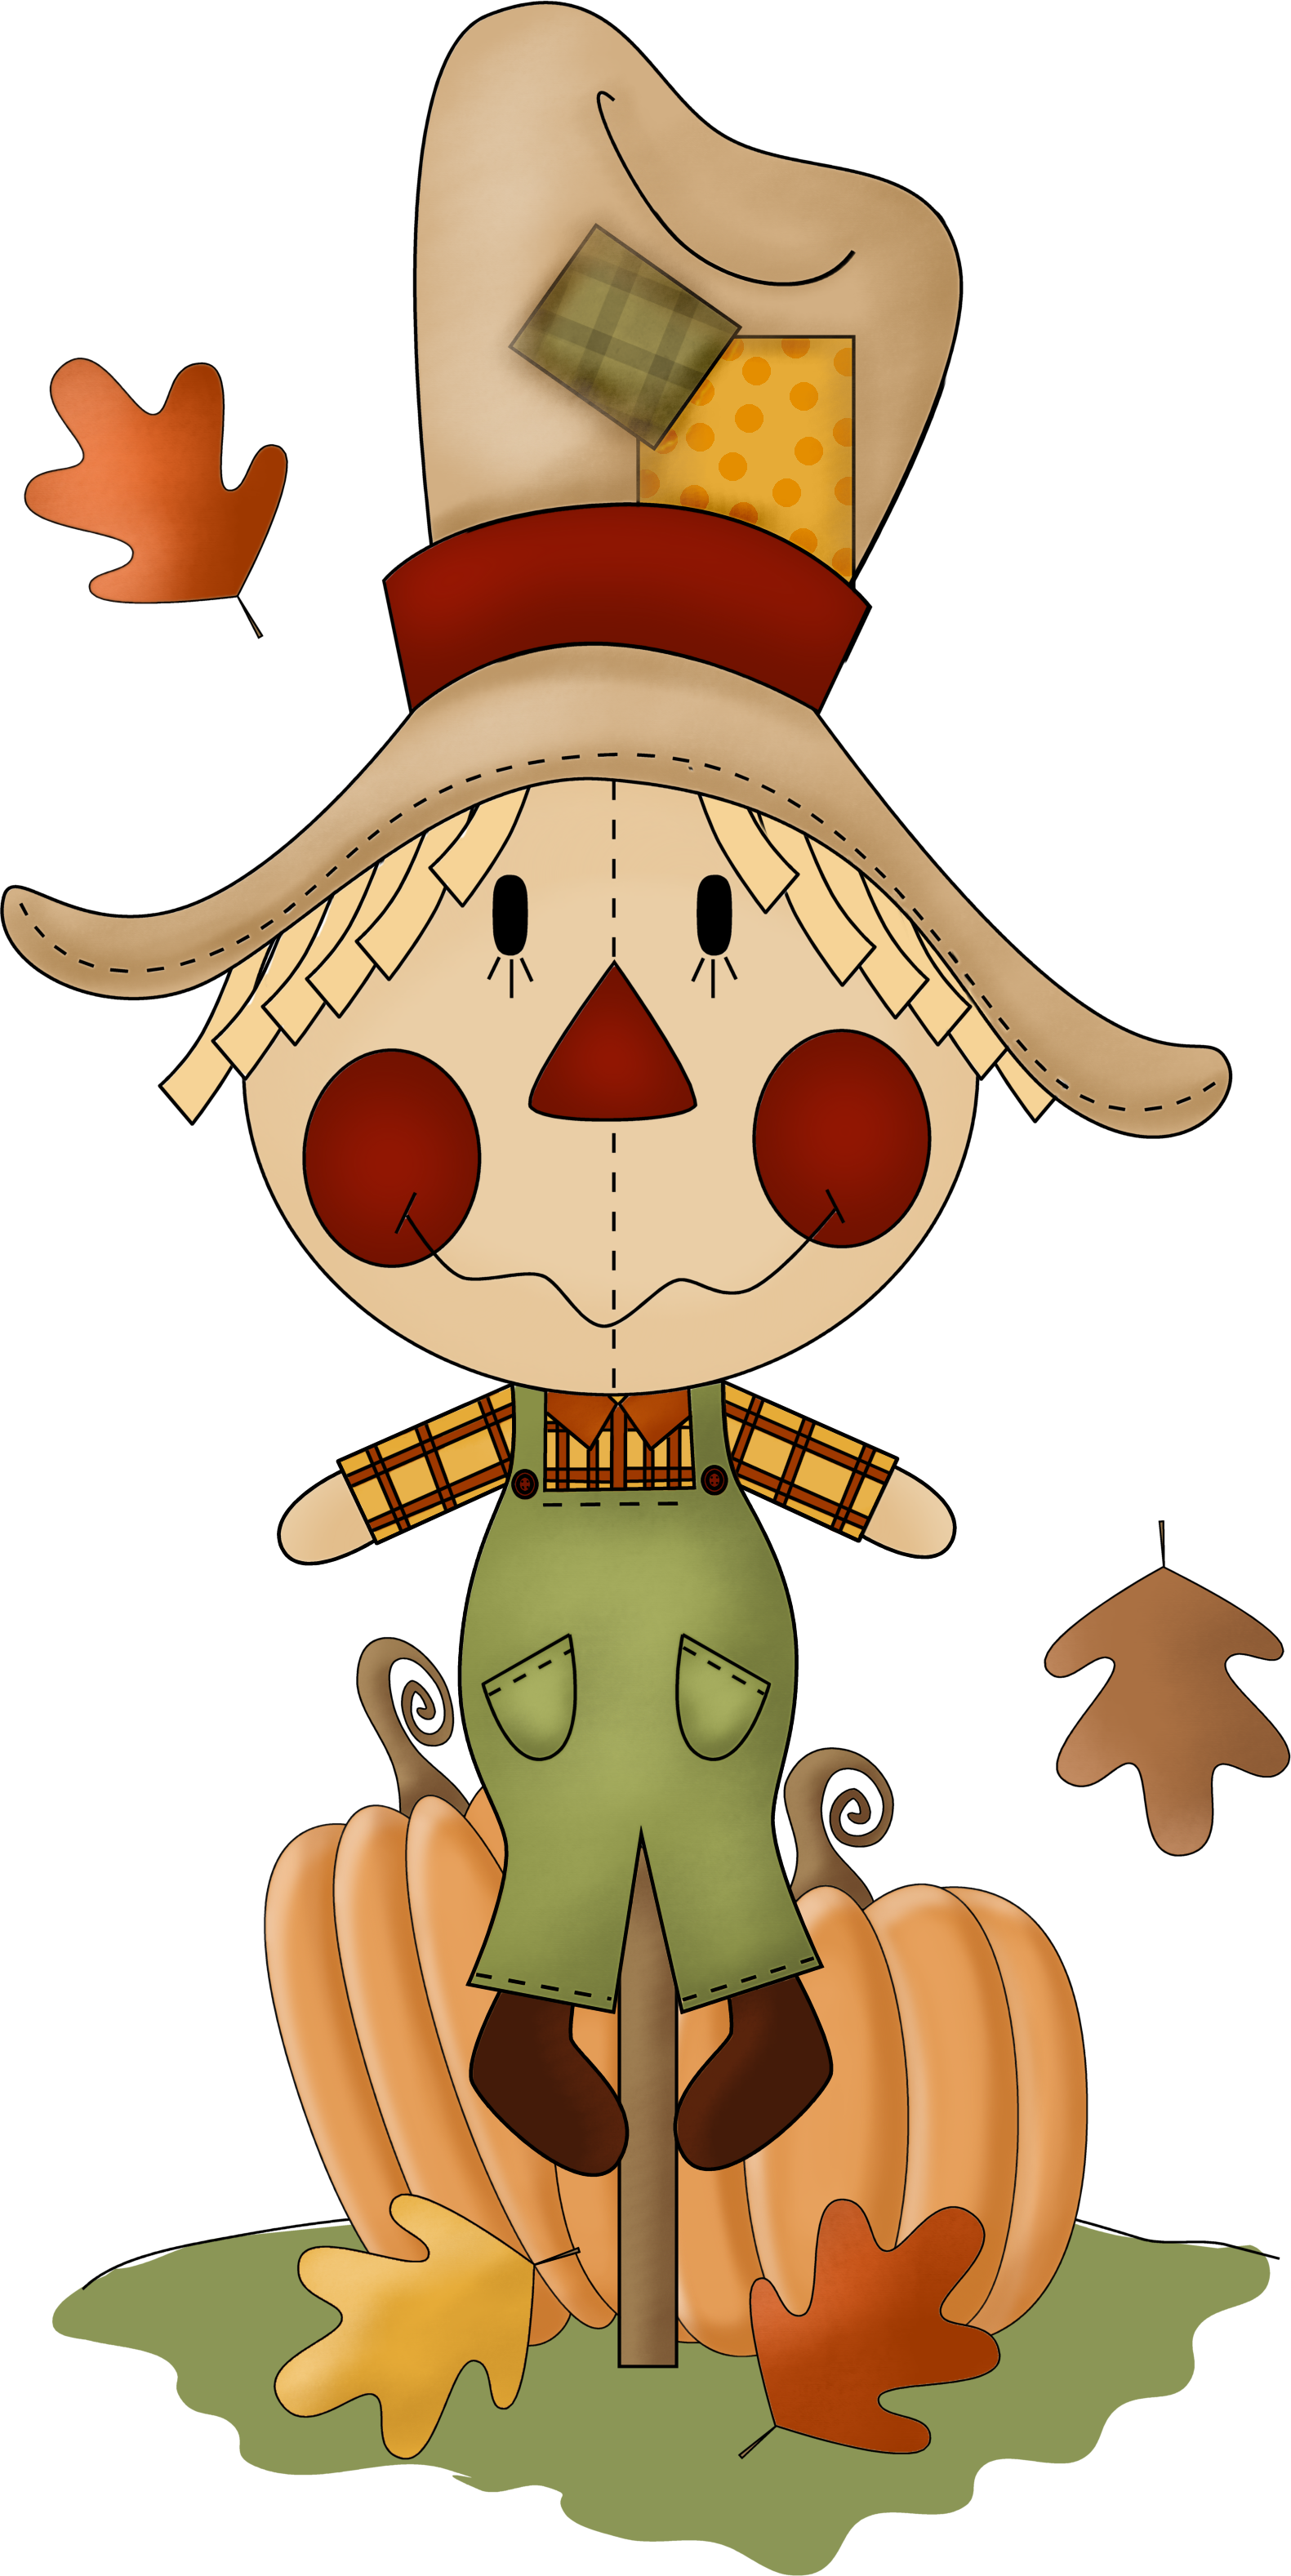 Scarecrow clip art fall. October clipart trick or treater